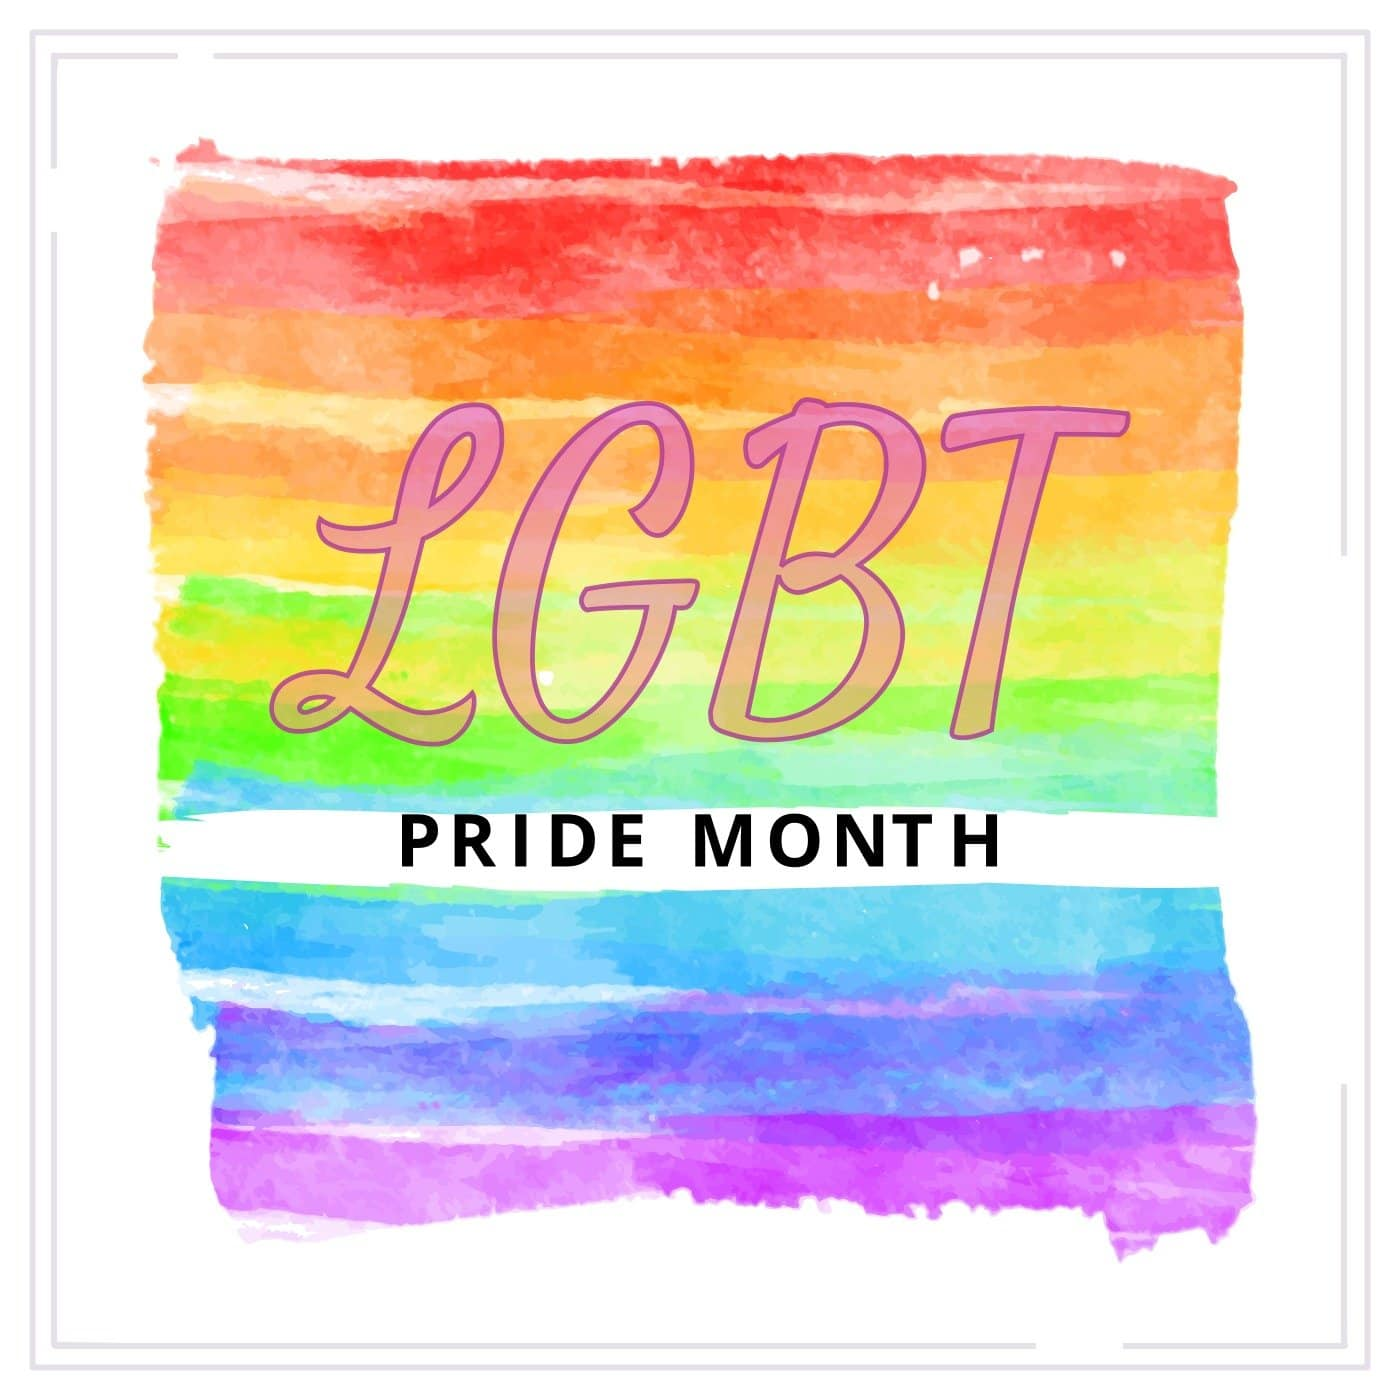 Lesbian, Gay, Bisexual, Transgender, and Queer (LGBTQ) Pride Month